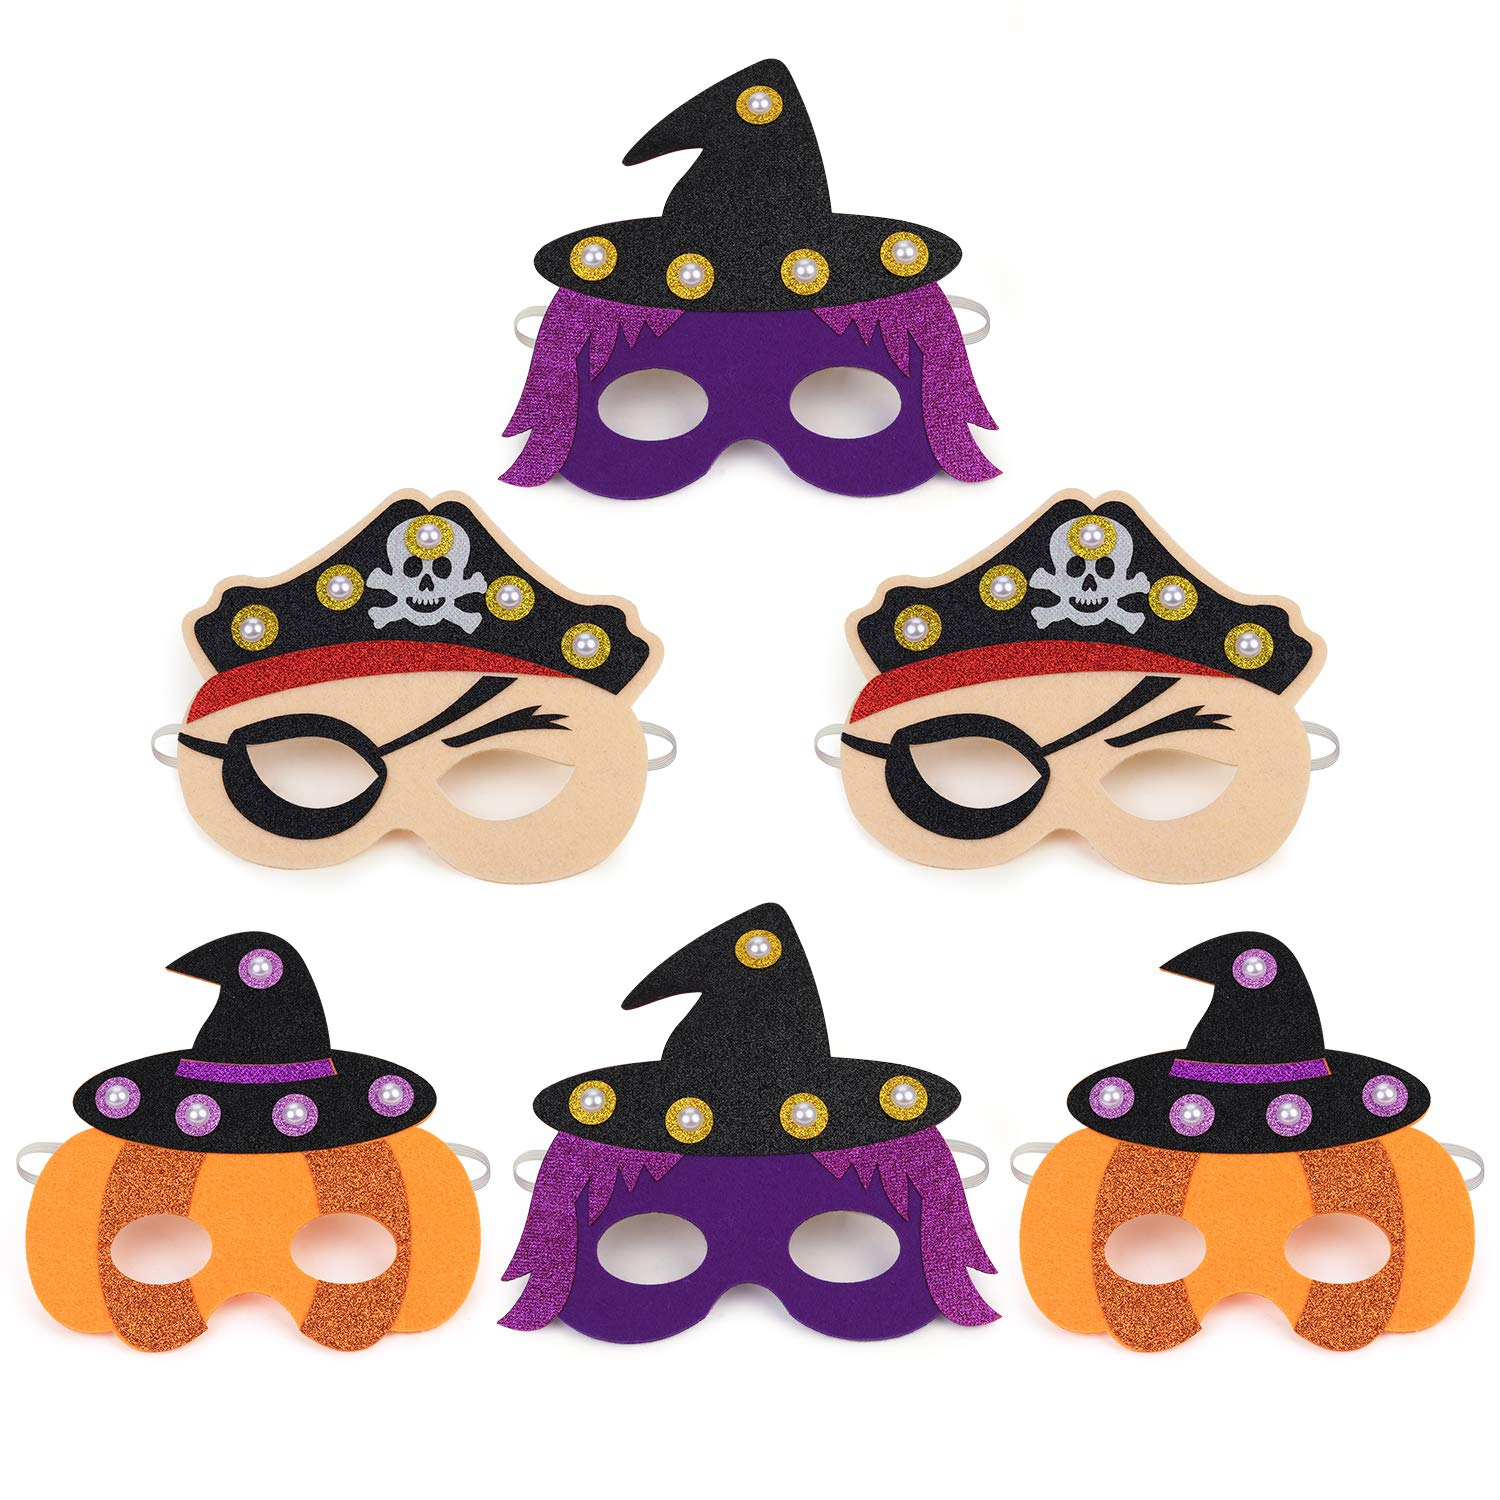 LED Halloween Masks for Kids,Aniwon 6PCS Pumpkin Pirate Witch Felt Cosplay Mask Childen Masquerade Mask Dress Up Costume Accessory for Party Favors Supplies